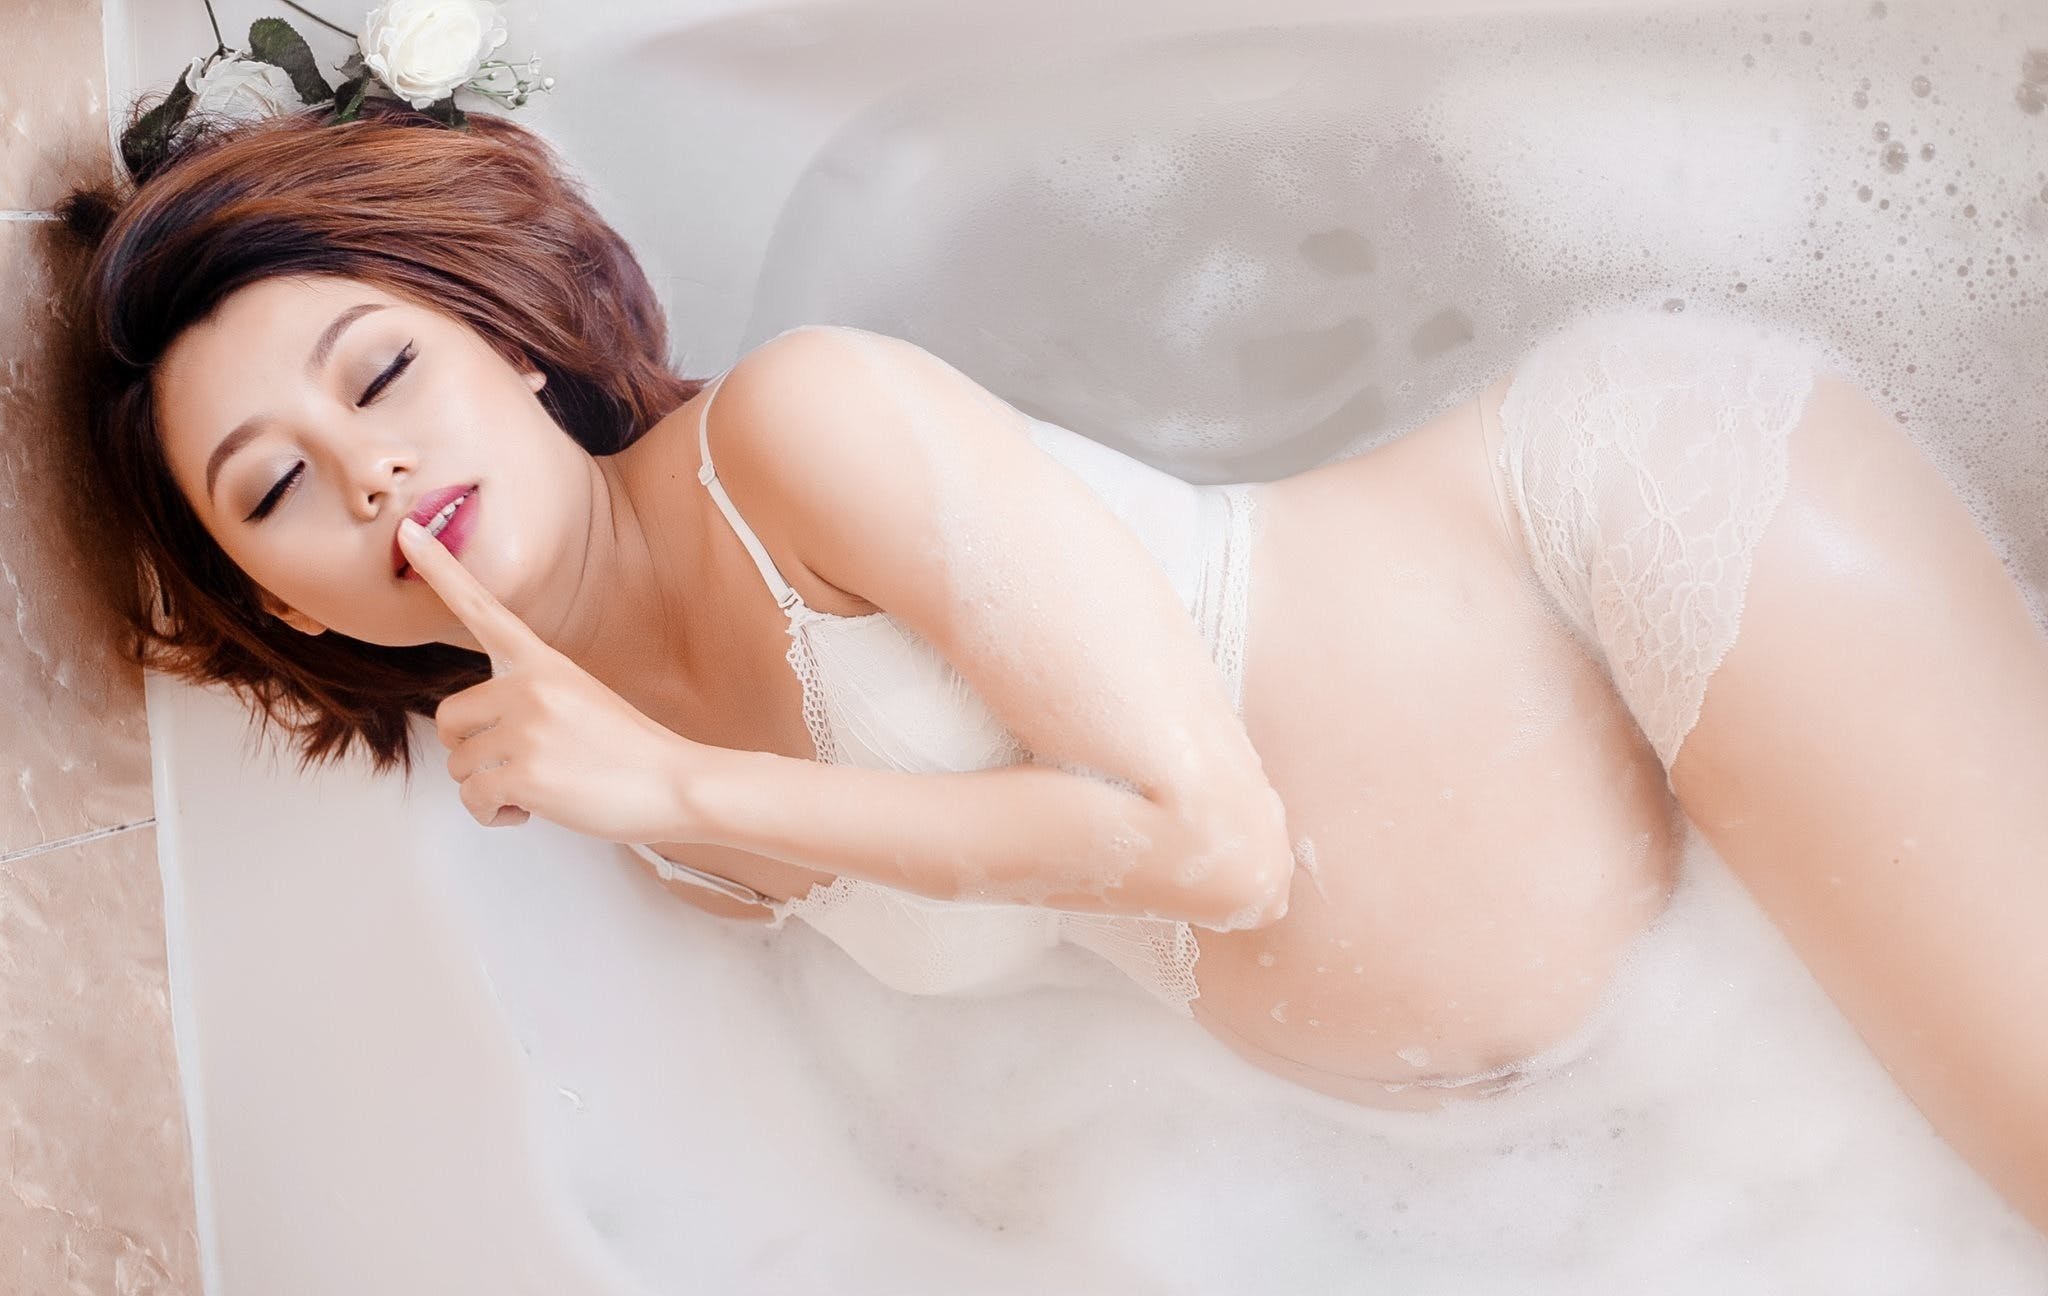 Free stock photo of bath, pregnant, nude, bathtub